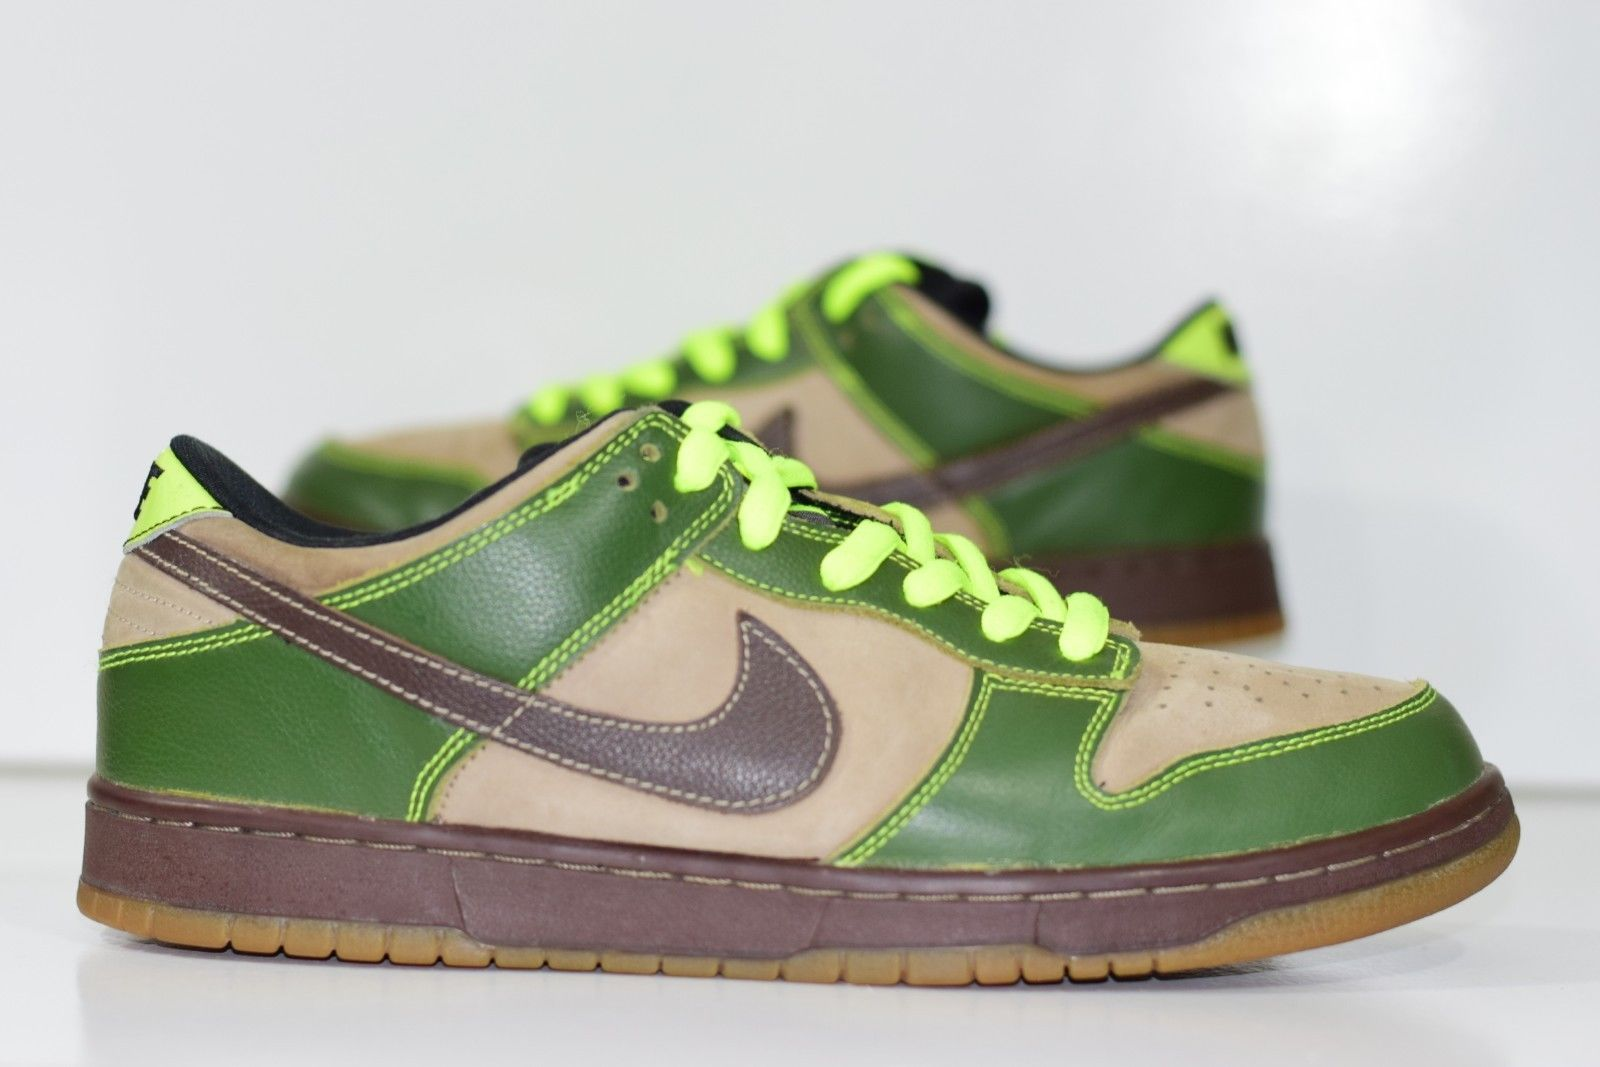 super popular 90cab 17fdb Size 10.5  2004 Nike Dunk Low Pro SB JEDI Star Wars Yoda 304292- ...